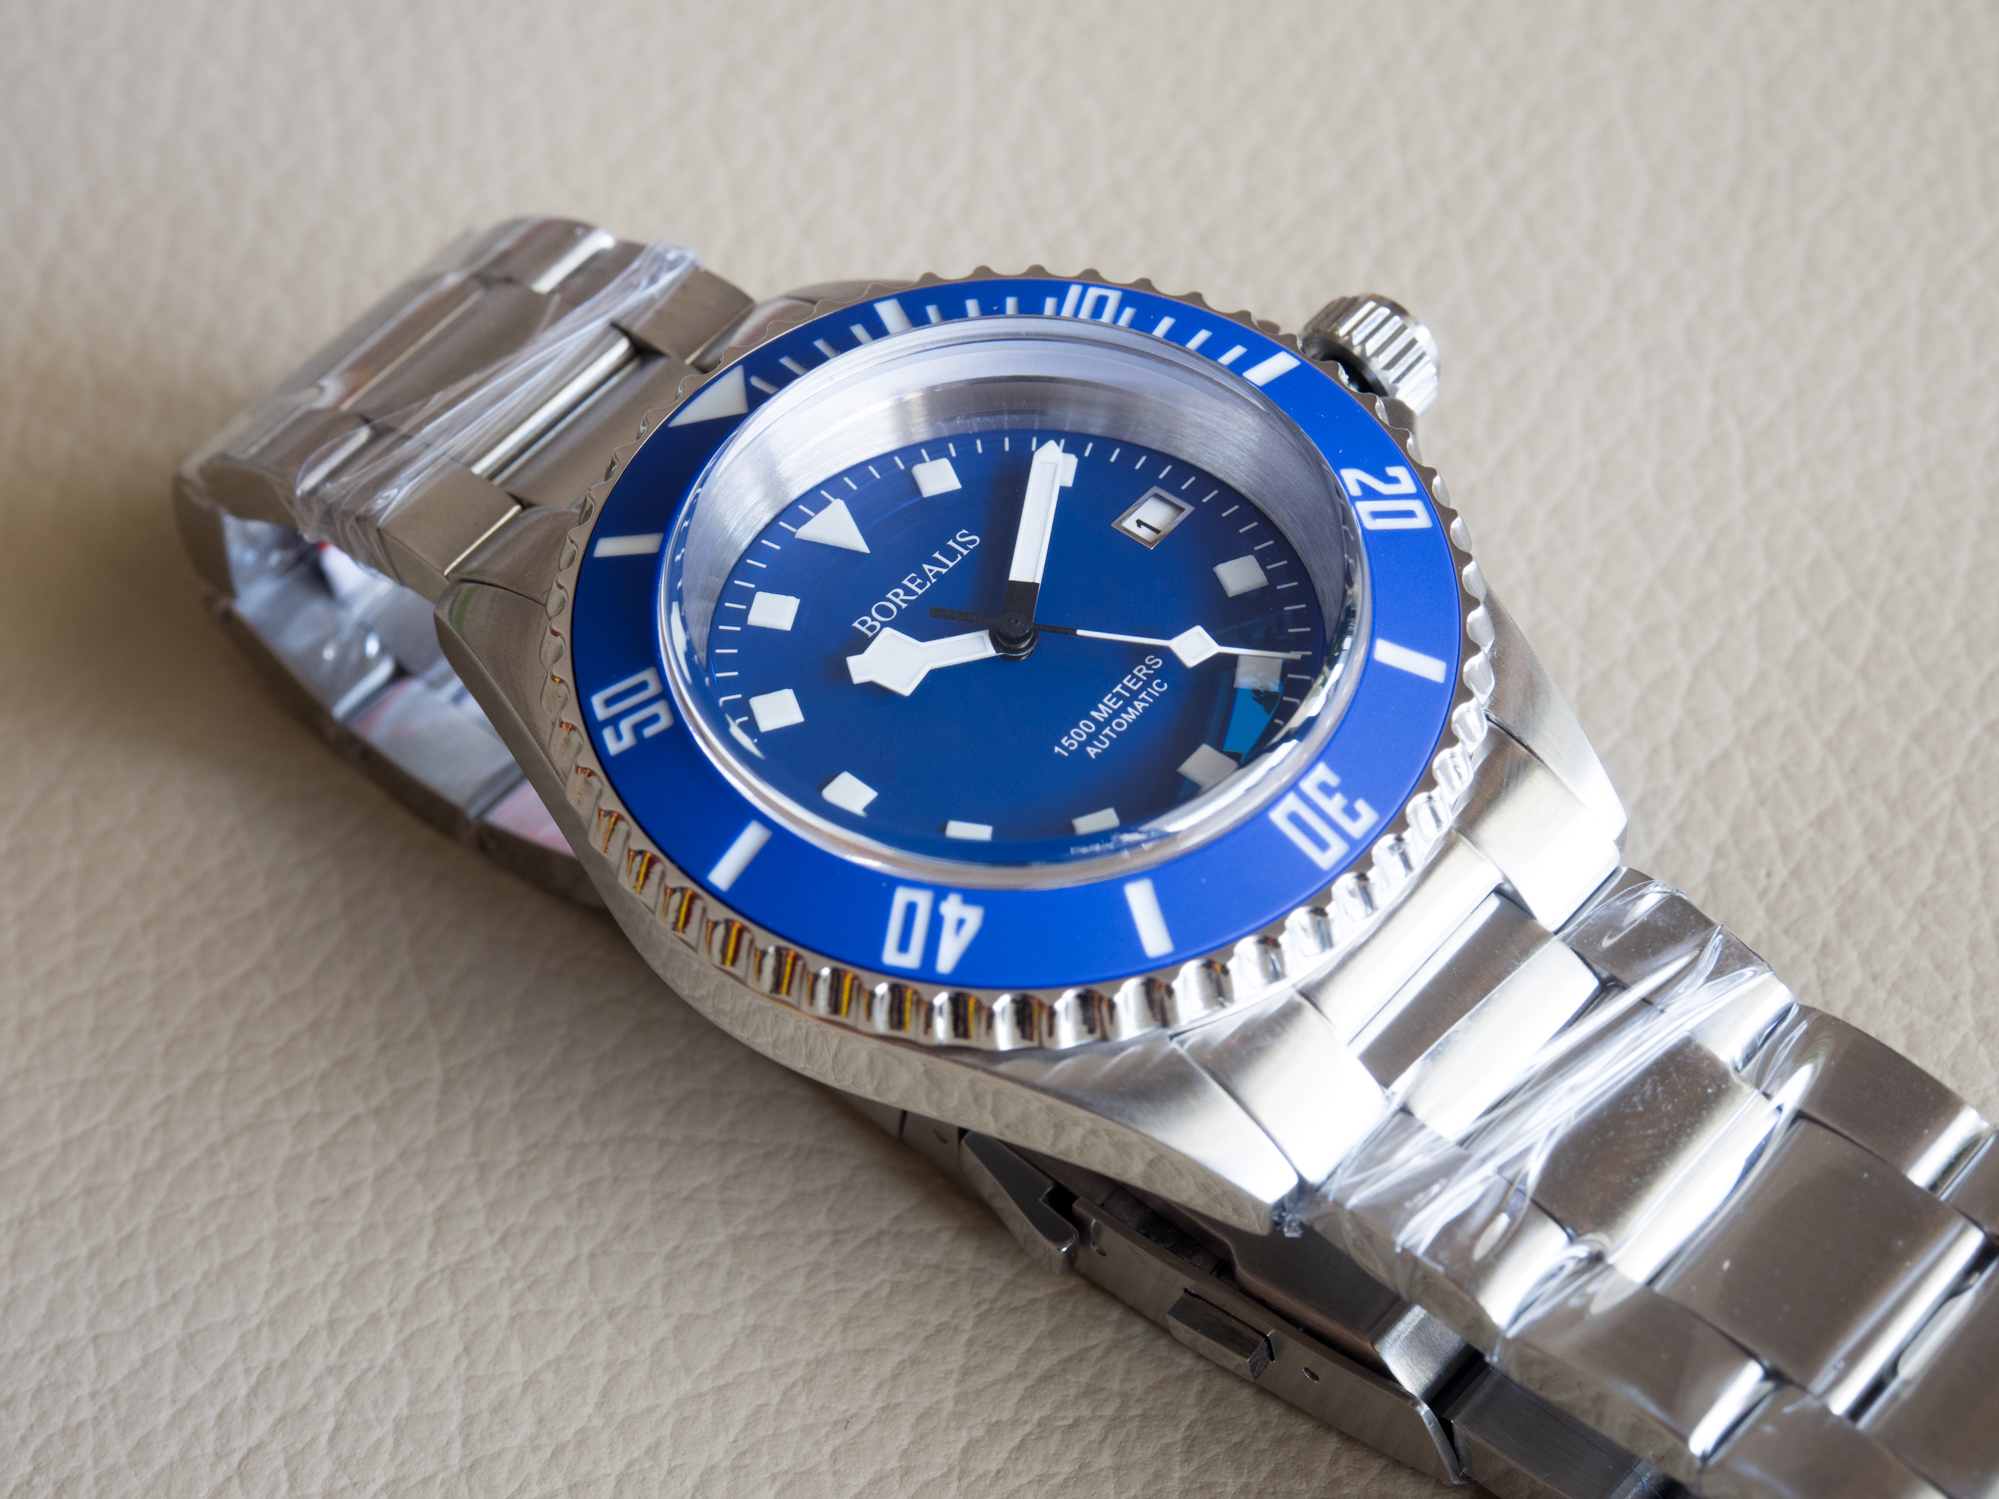 Borealis Sea Hawk 1500m Diver Watch Blue Ceramic Bezel Blue Dial